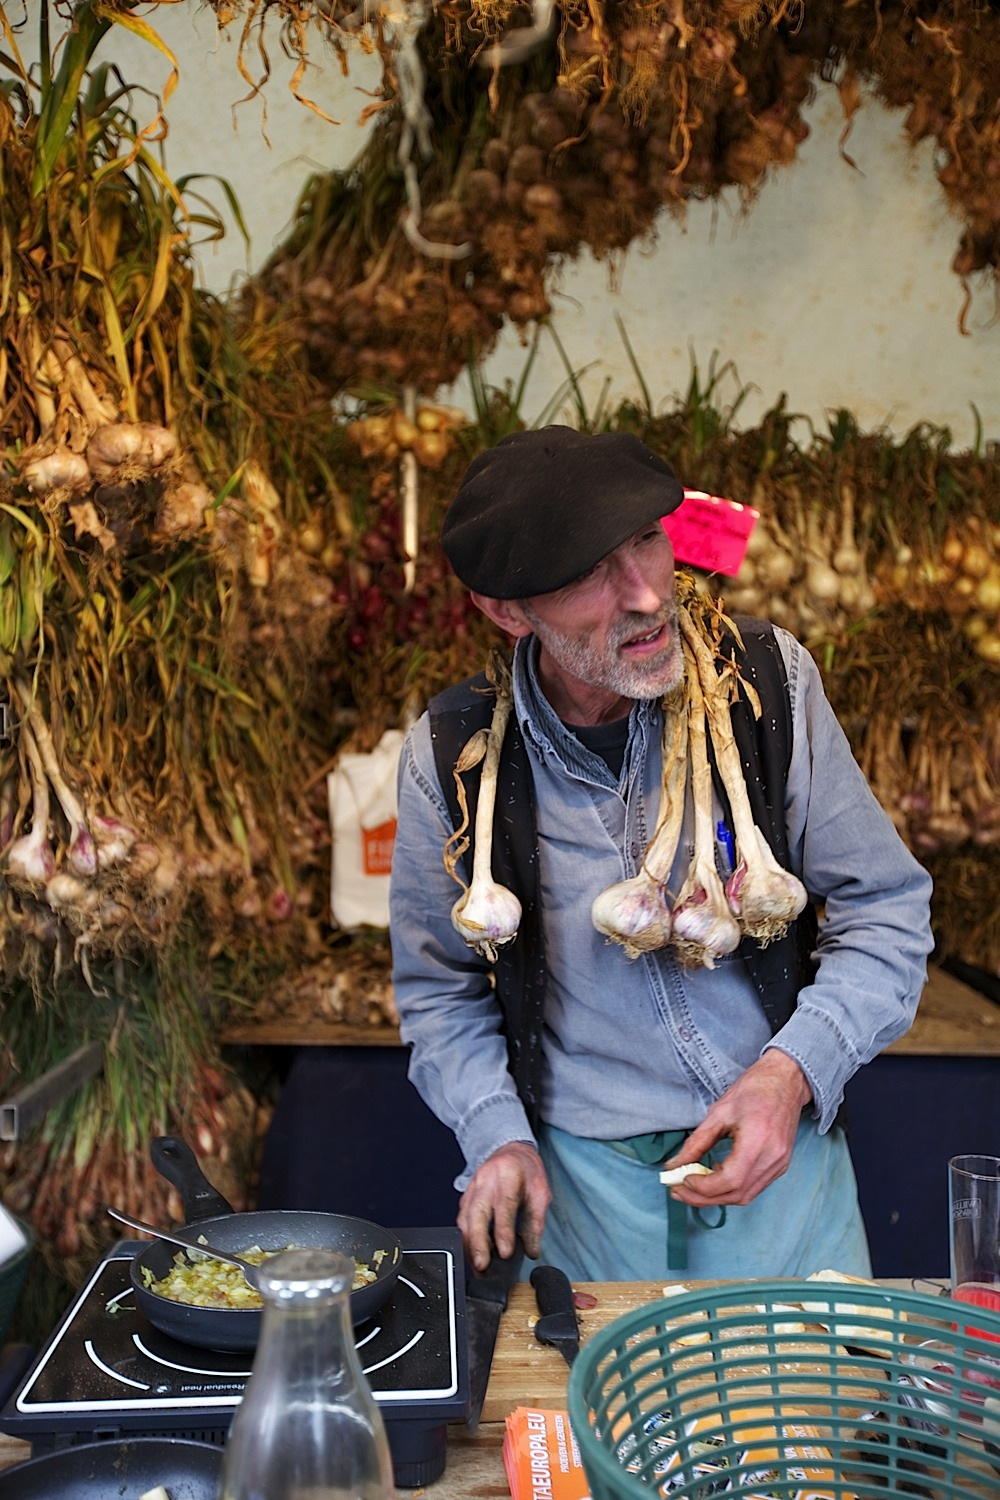 A guy selling garlic at a market in Ghent, Belgium.